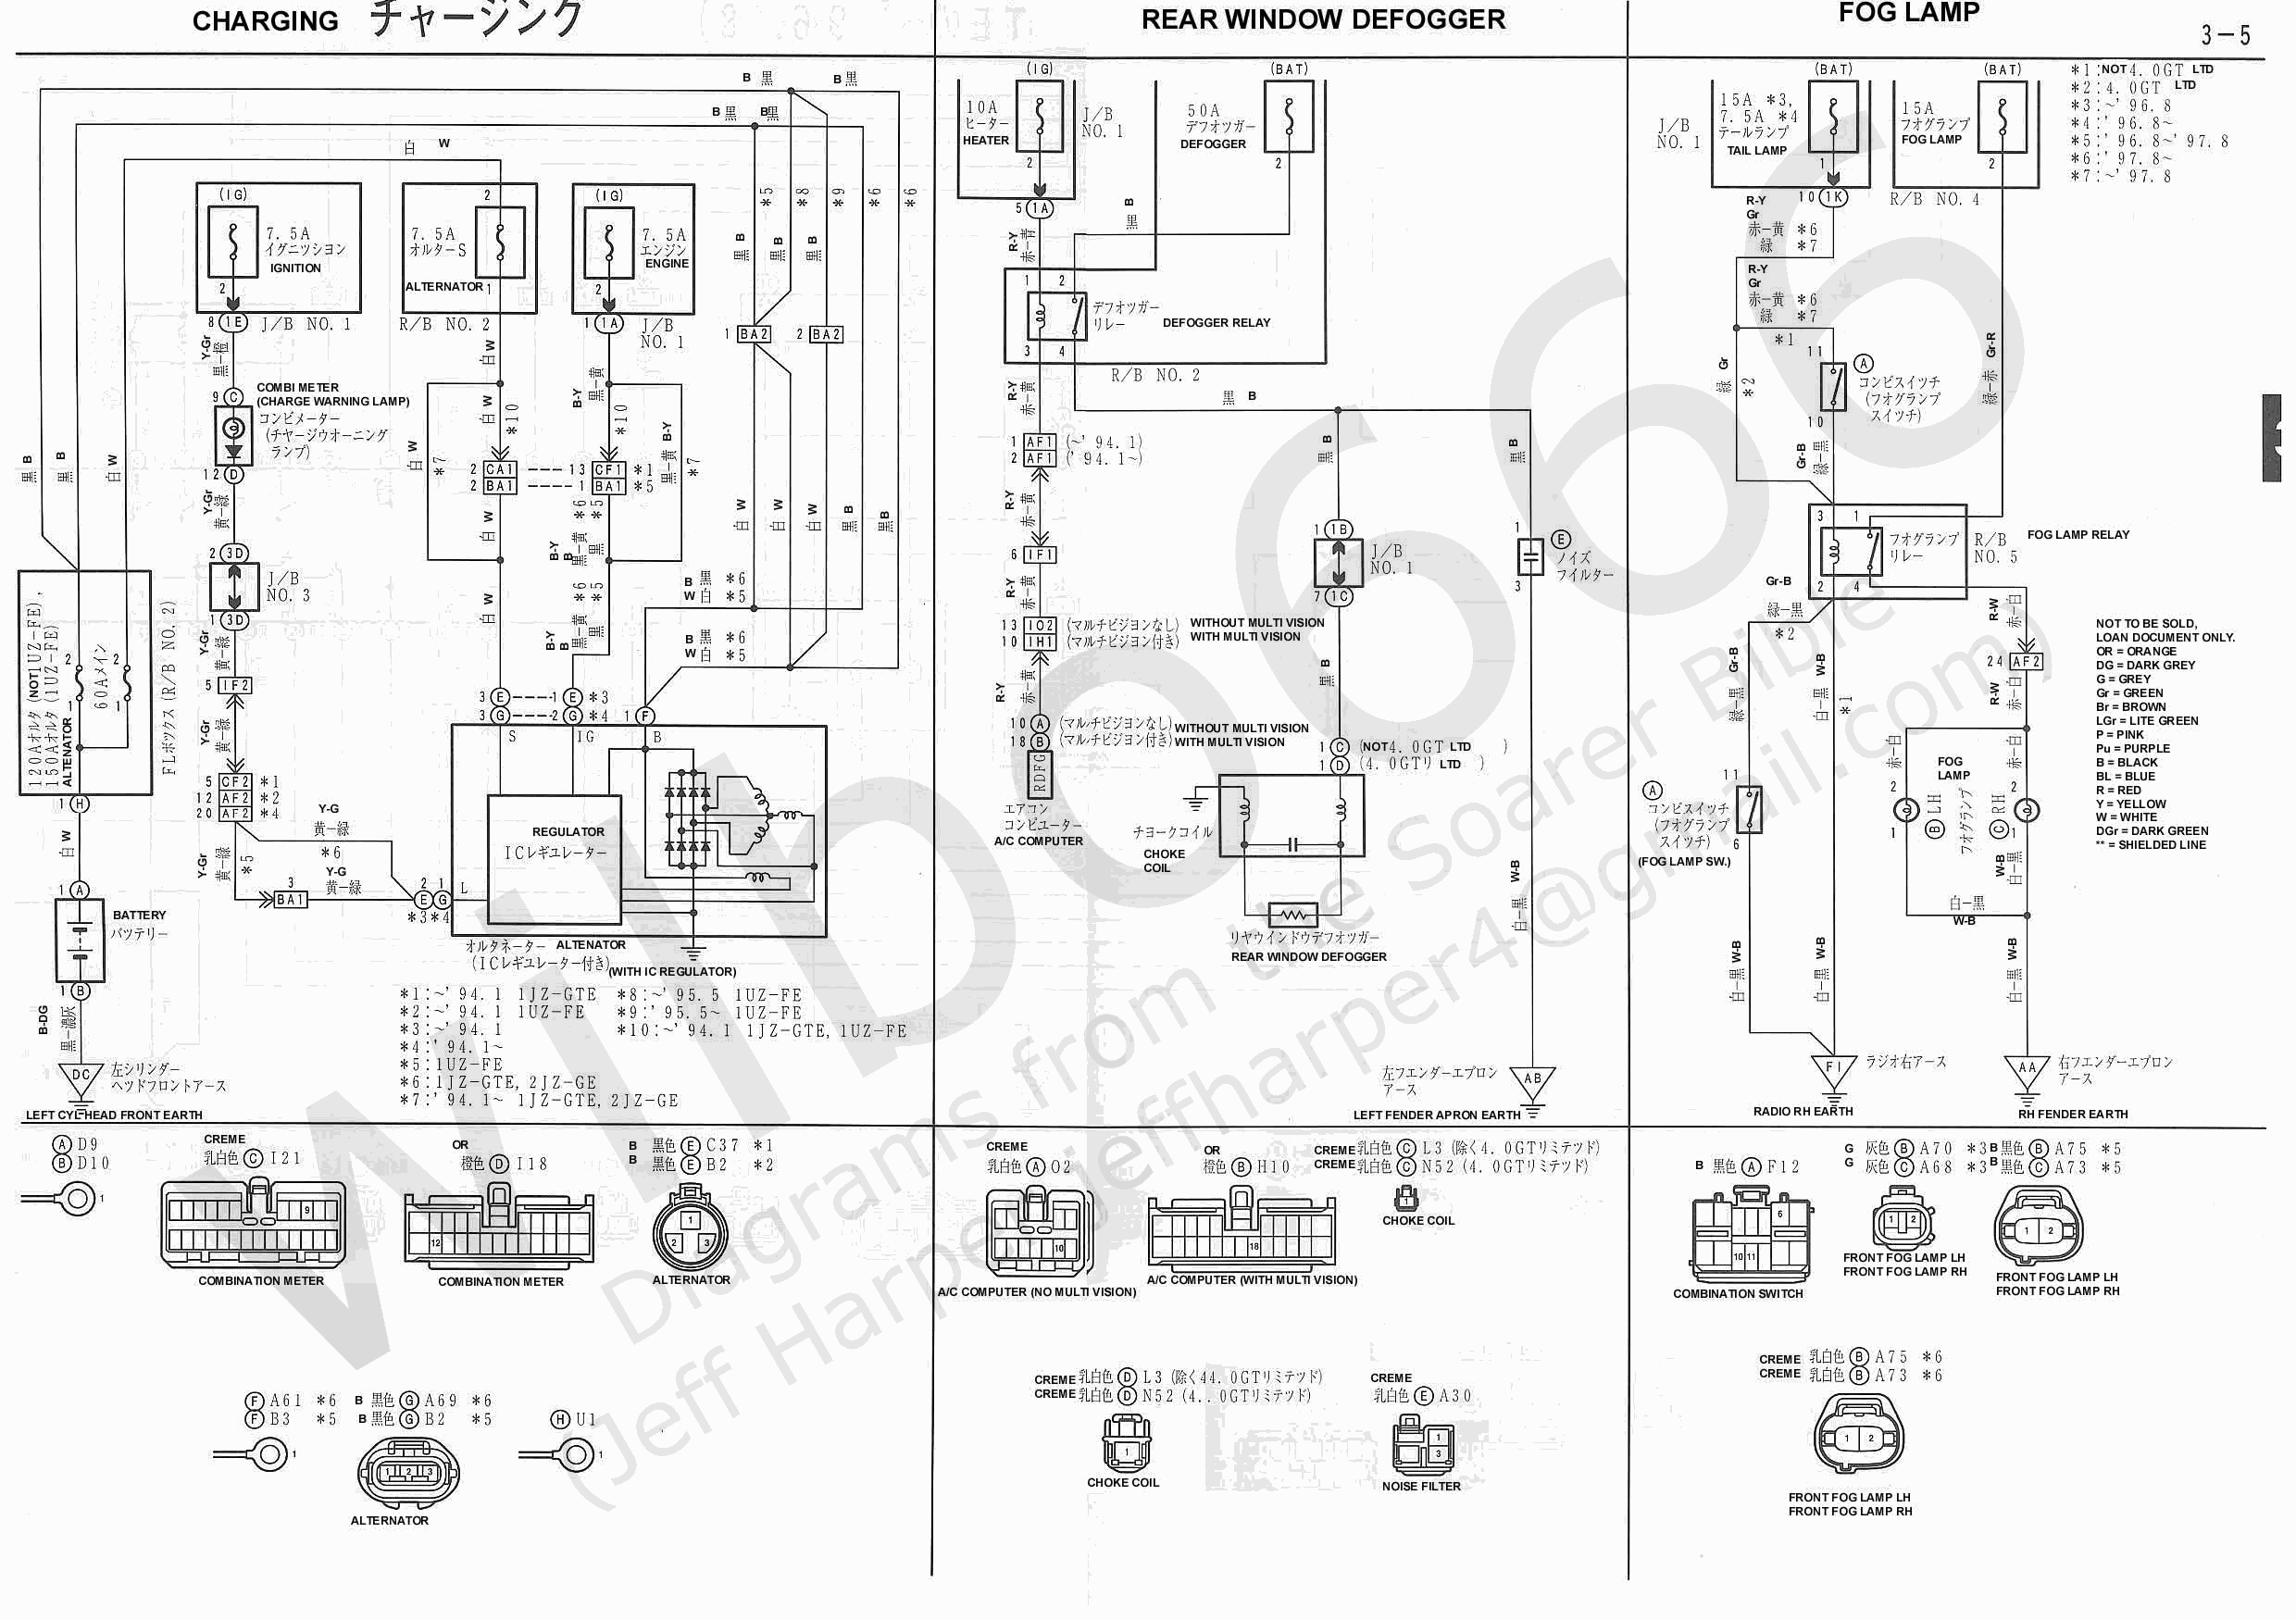 xZZ3x Electrical Wiring Diagram 6737105 3 5?resize\\\\\\\\\\\\\\\\\\\\\\\\\\\\\\\=665%2C469 transmission wiring diagram wiring diagram simonand transmission wire diagram 2000 toyota tundra at panicattacktreatment.co